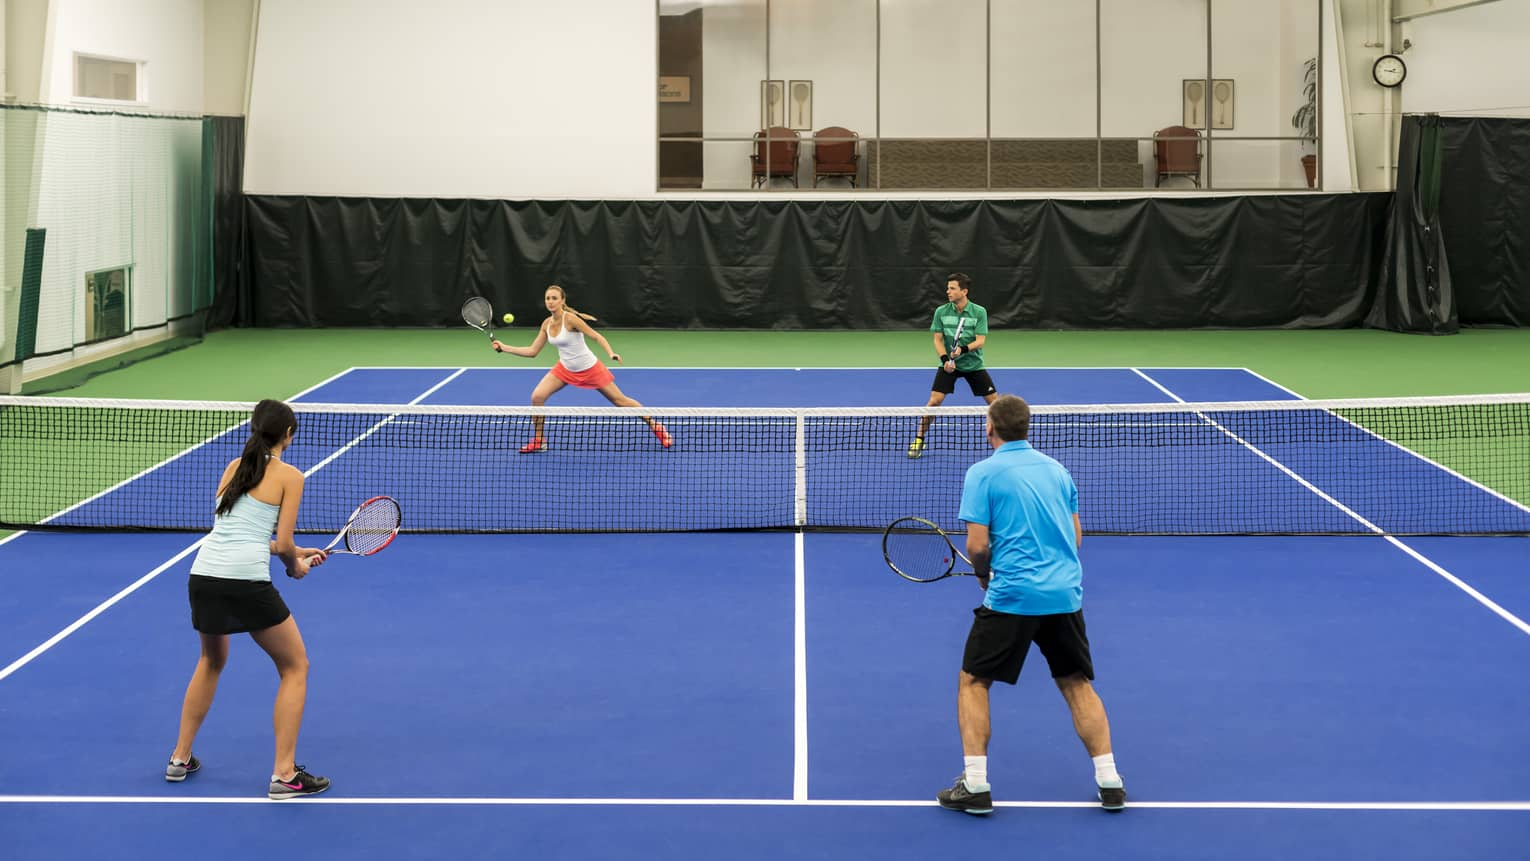 Two women, two men play tennis match on blue court